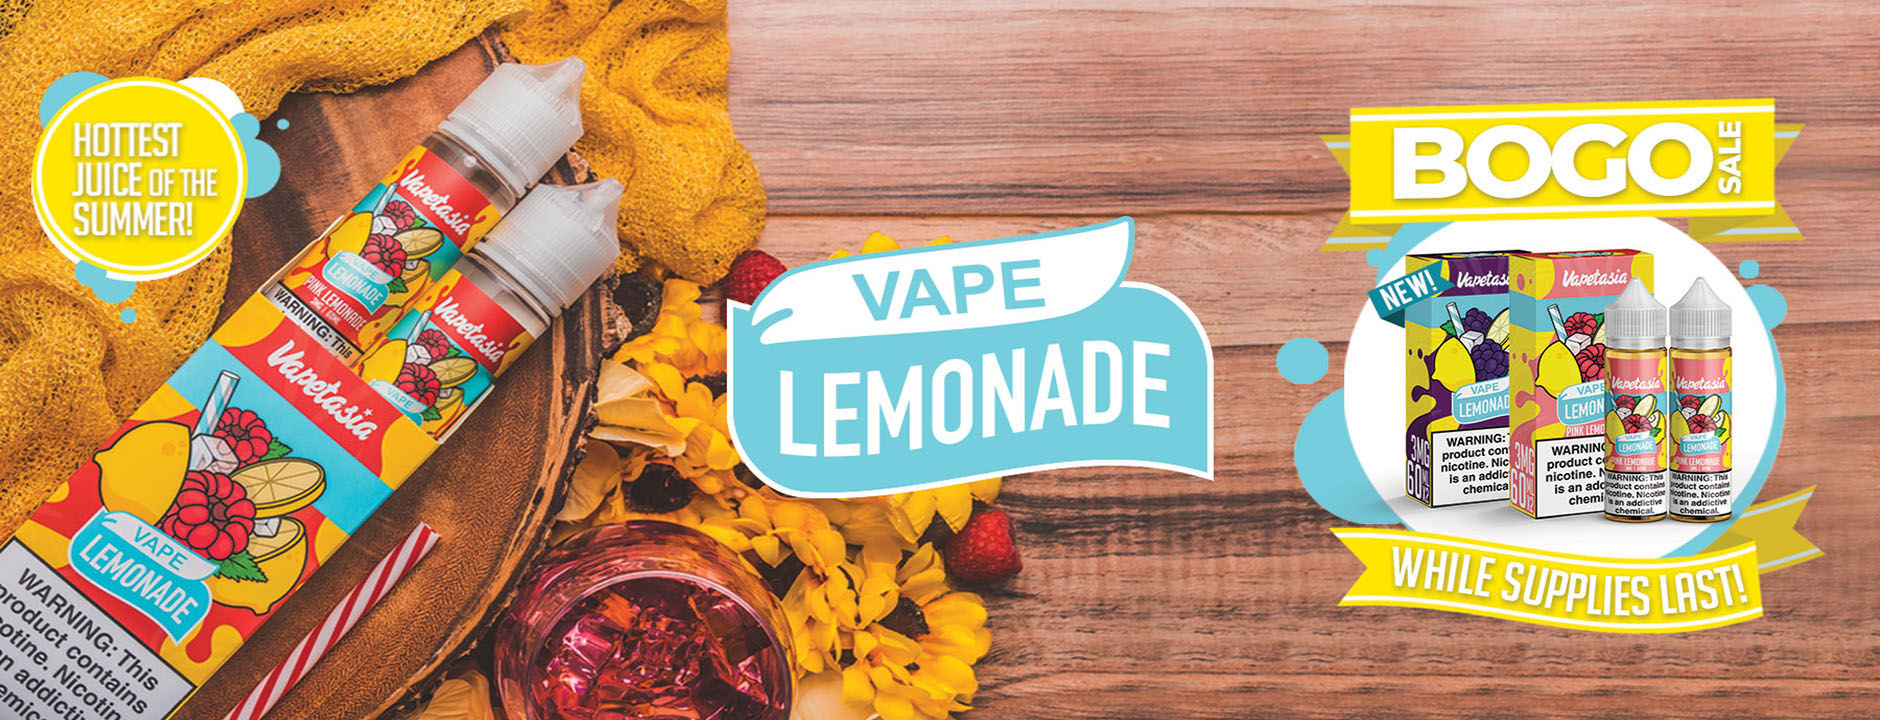 WholesaleVapor com - Your #1 Vape Shop Supplier